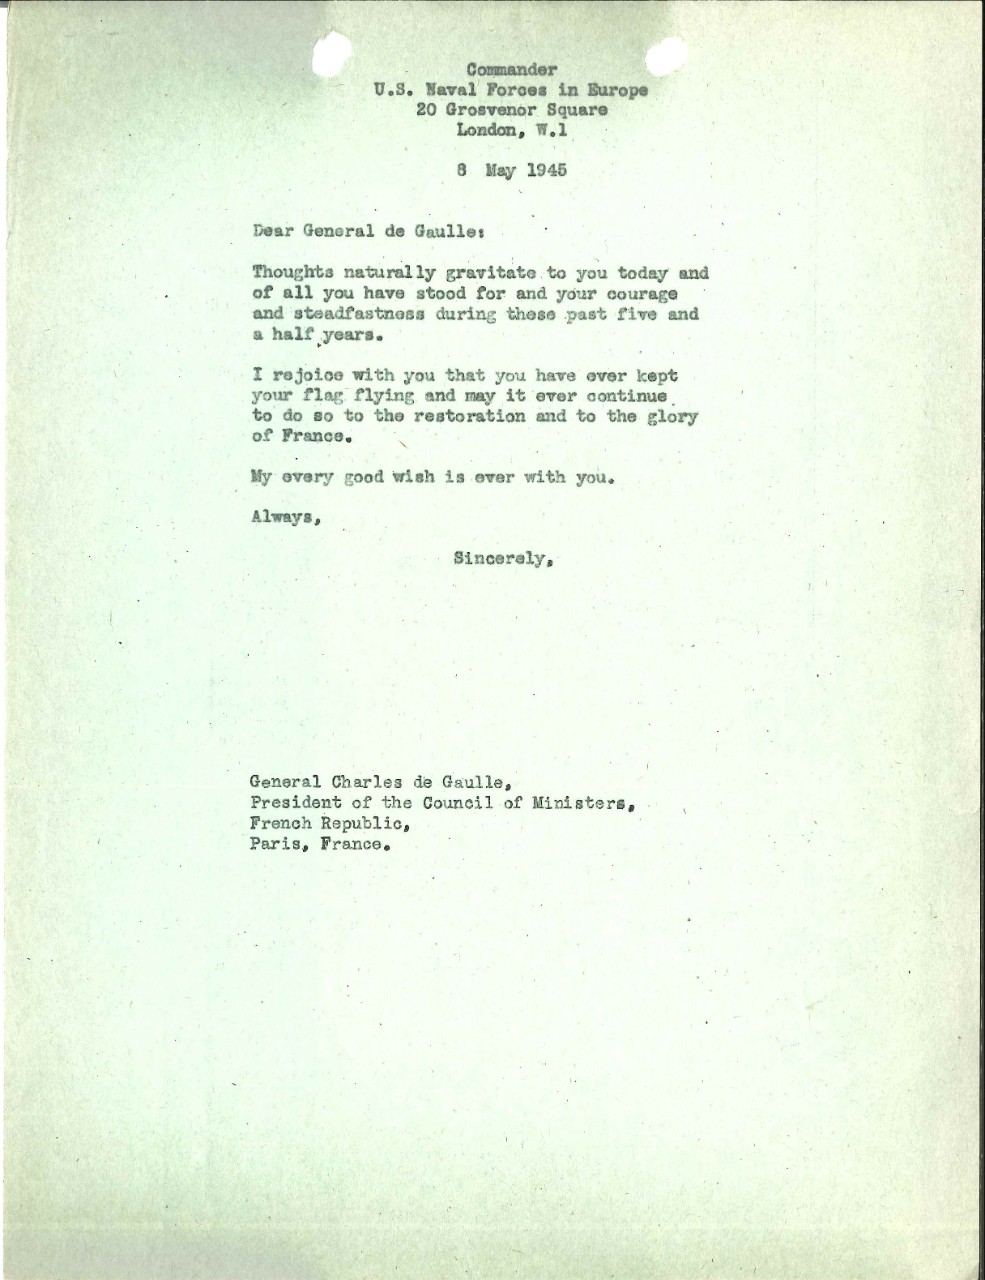 <p>Letter from Admiral Harold Stark to Charles de Gaulle, May 8, 1945</p>